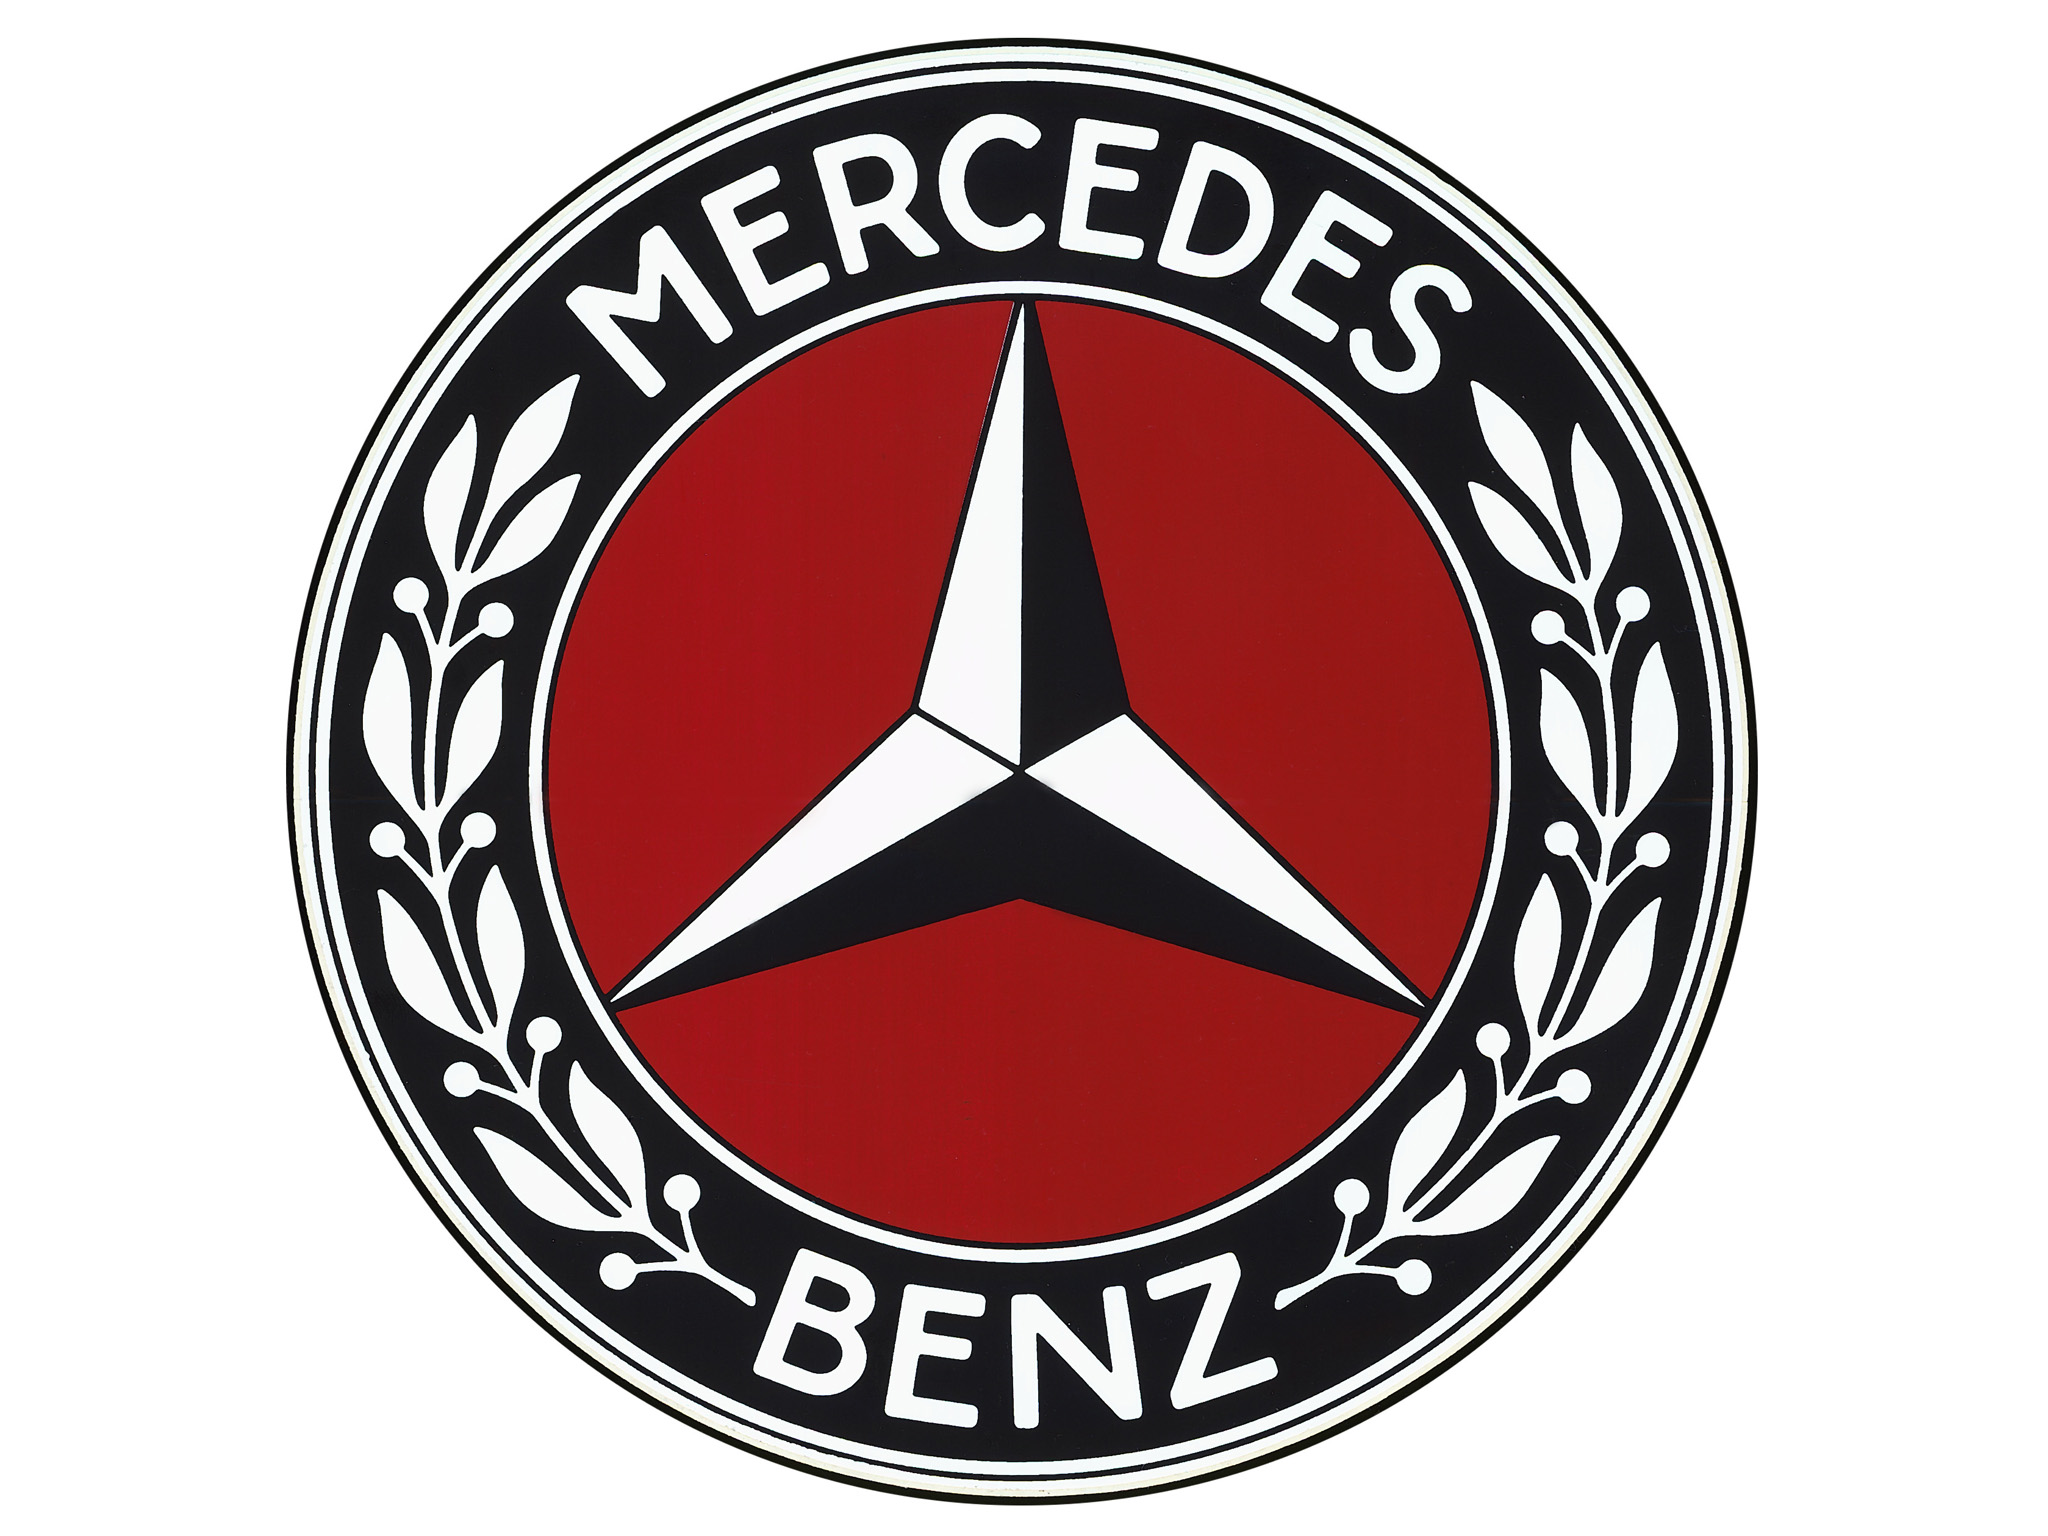 Behind the badge mercedes benz s star emblem holds a big for Mercedes benz insignia